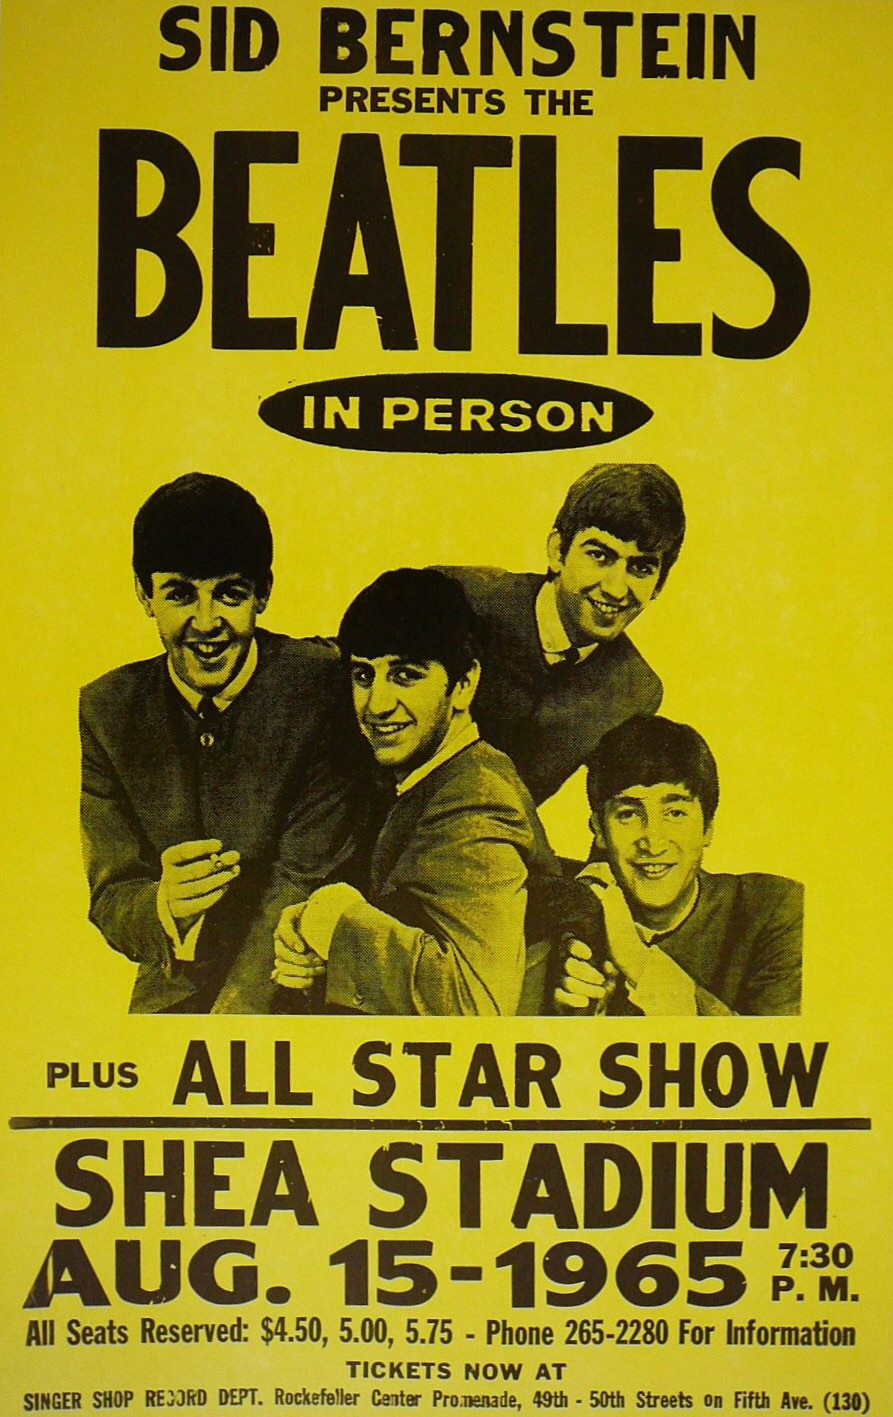 Poster for the Beatles' performance at Shea Stadium, August 15th 1965.